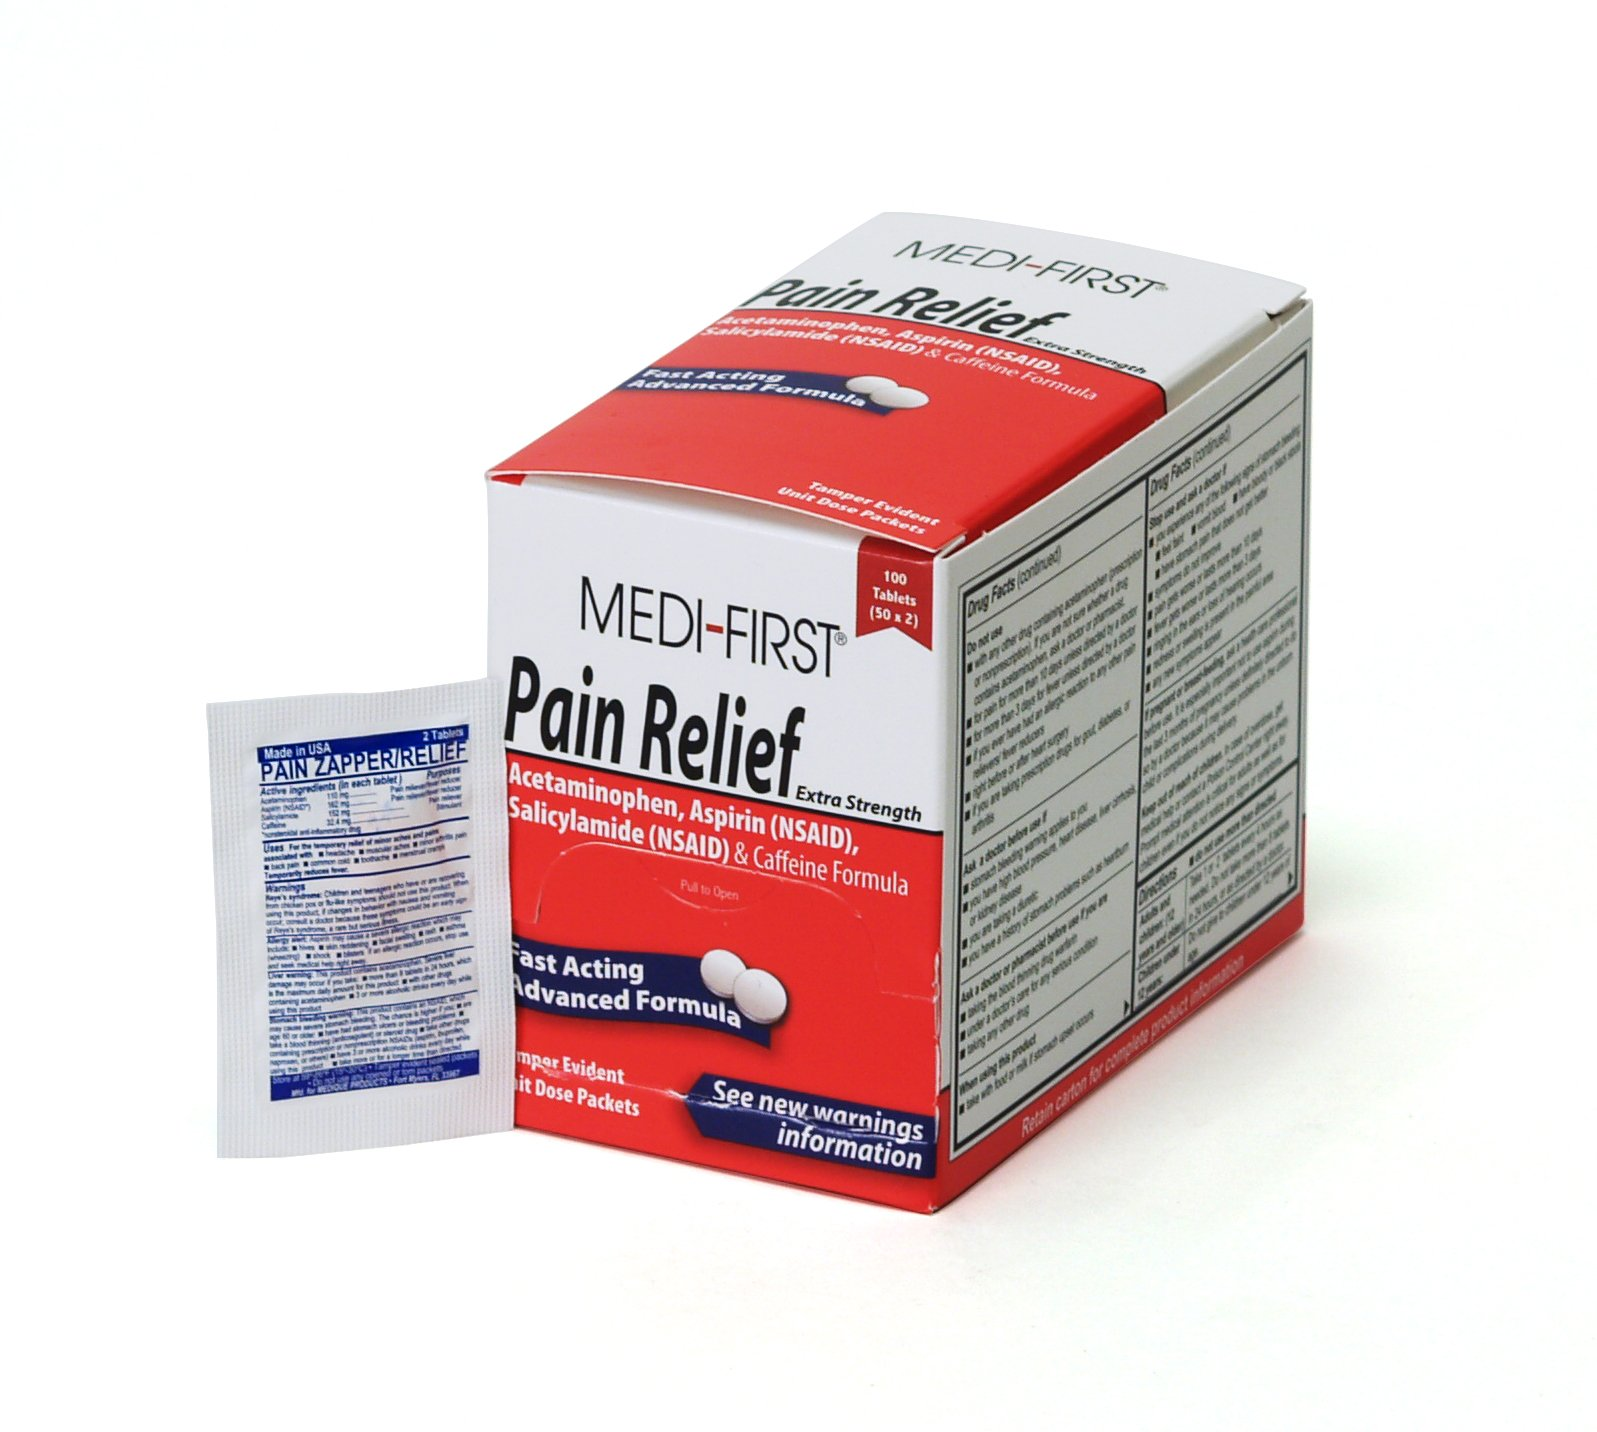 Medi-First Pain Relief Tablets with Aspirin and Acetaminophen, 100 Tablets by Medique